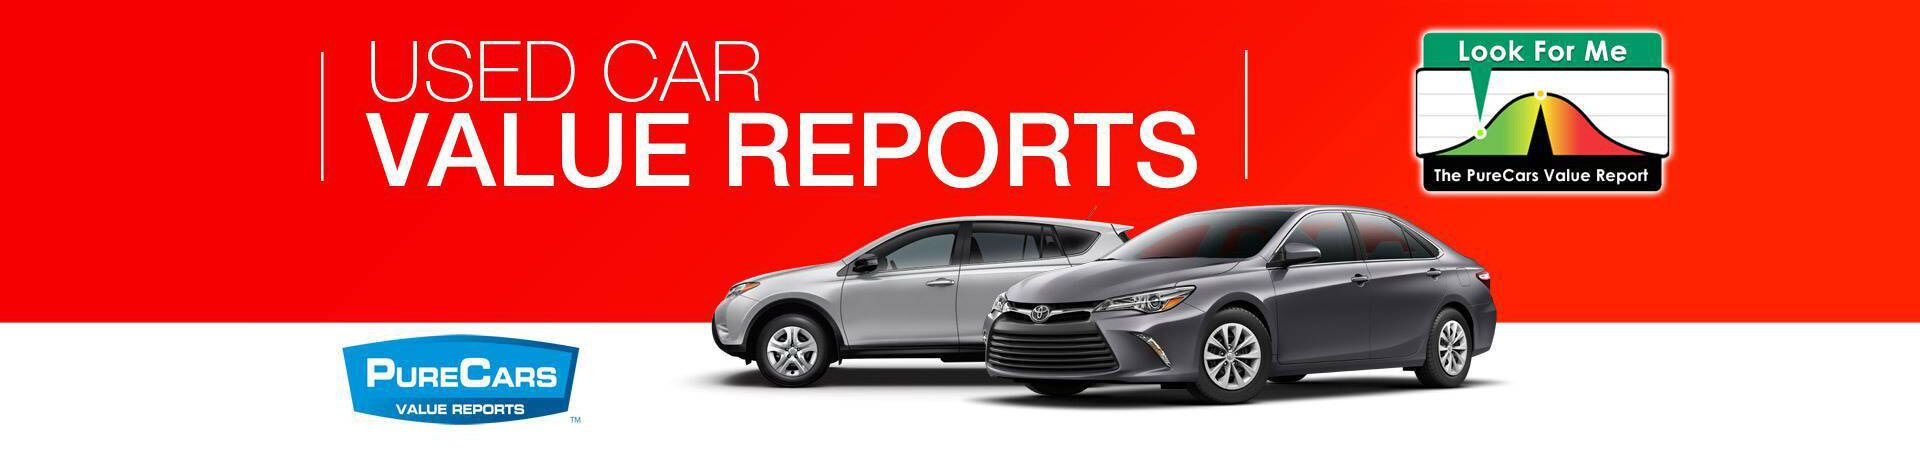 Pure Cars Used Car Value Reports